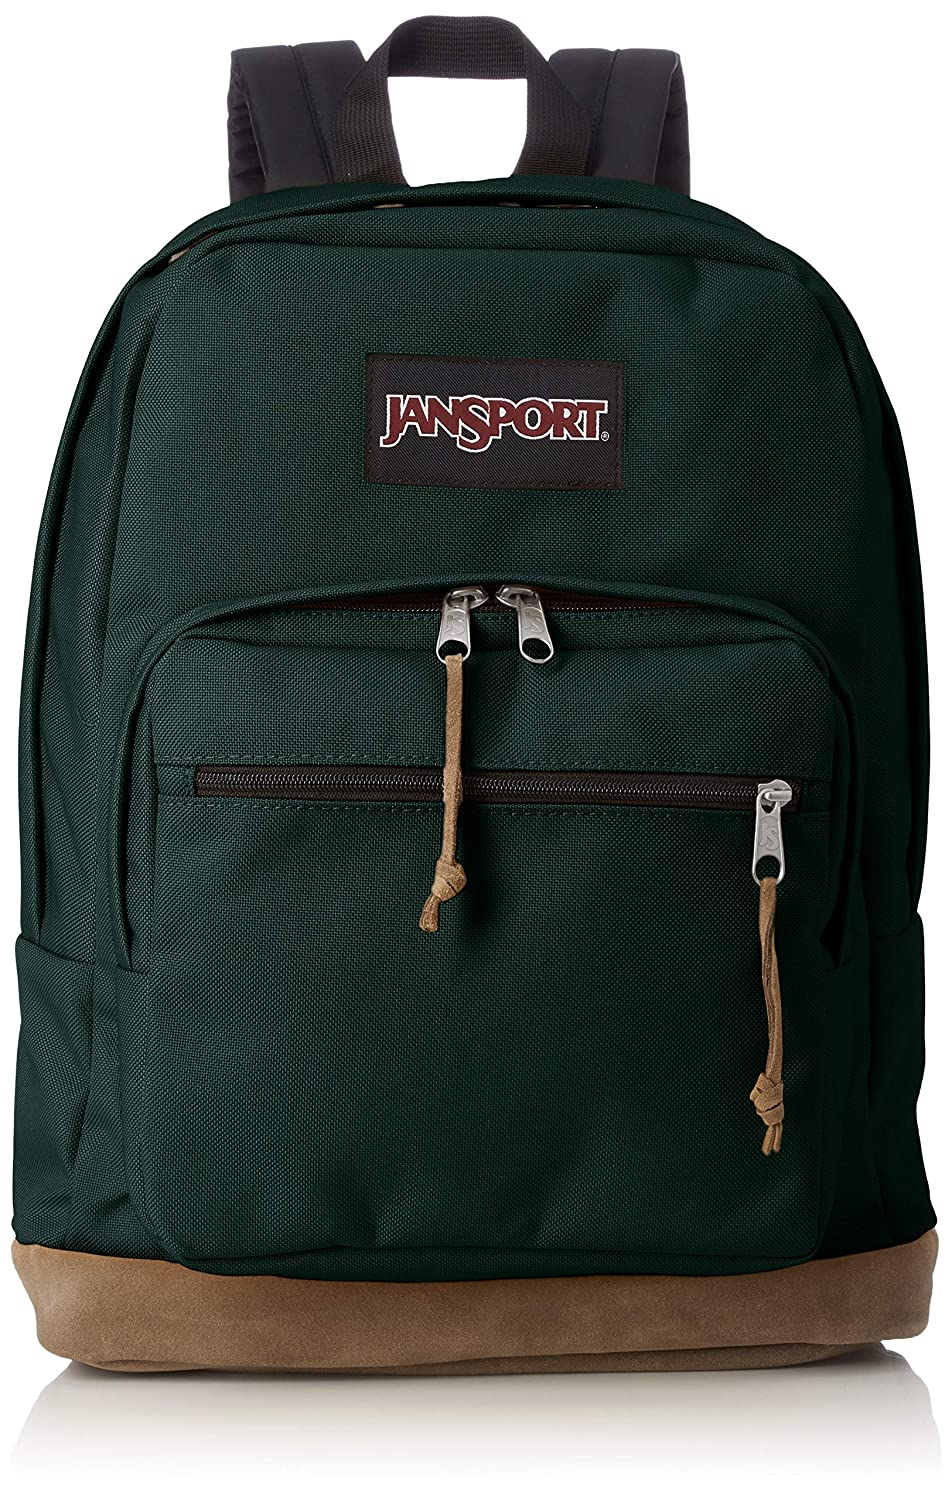 Jansport Right Pack 1900 Cu. In. Classic Backpack 008.BLACK OS TDN6011